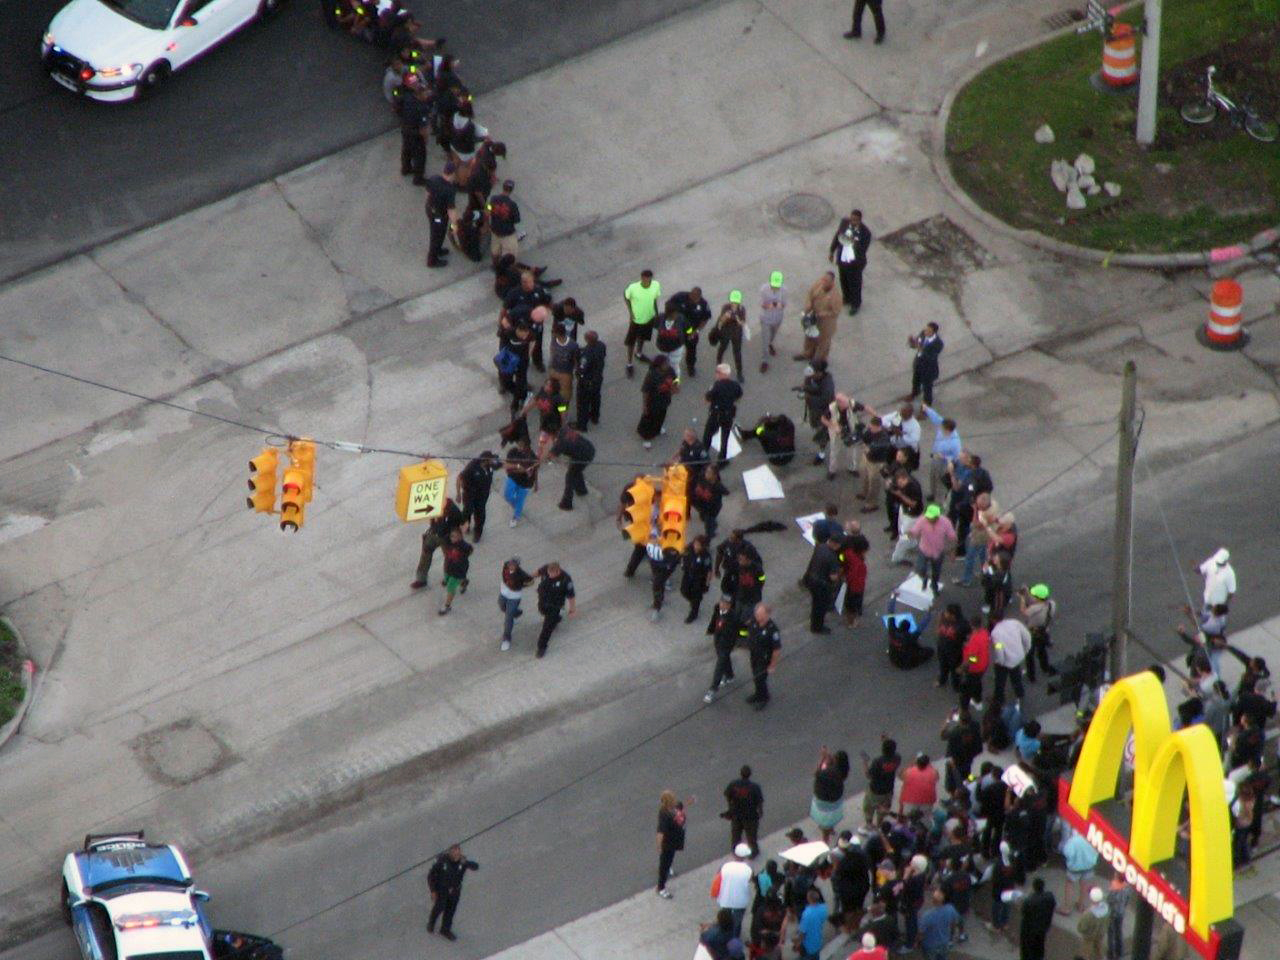 Dozens of people were arrested during a minimum wage protest outside a Detroit McDonald's. (Credit: Bill Szumanski/WWJ Newsradio 950)